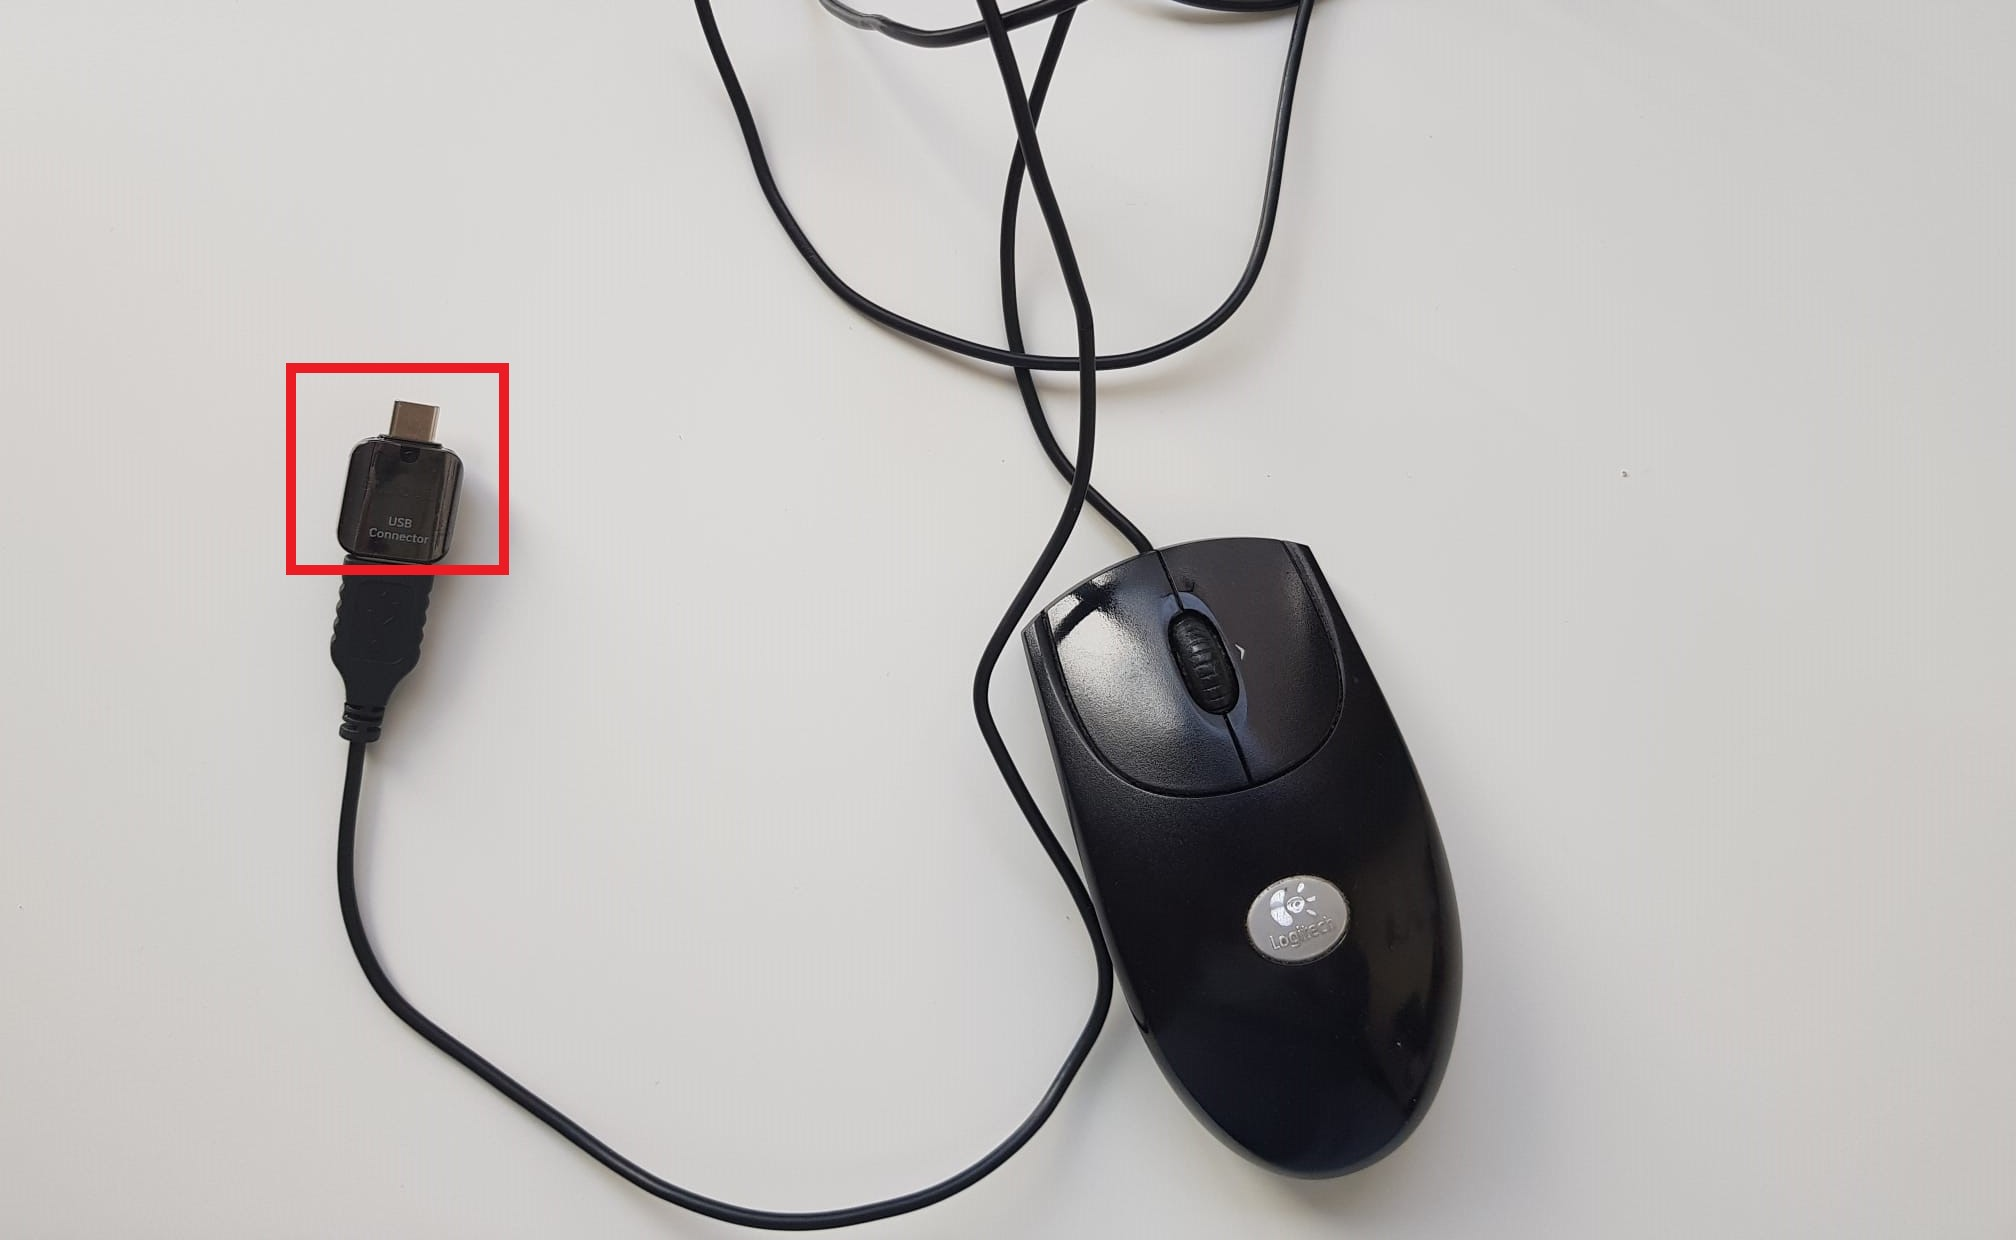 Mouse with adapter for app ease joypad